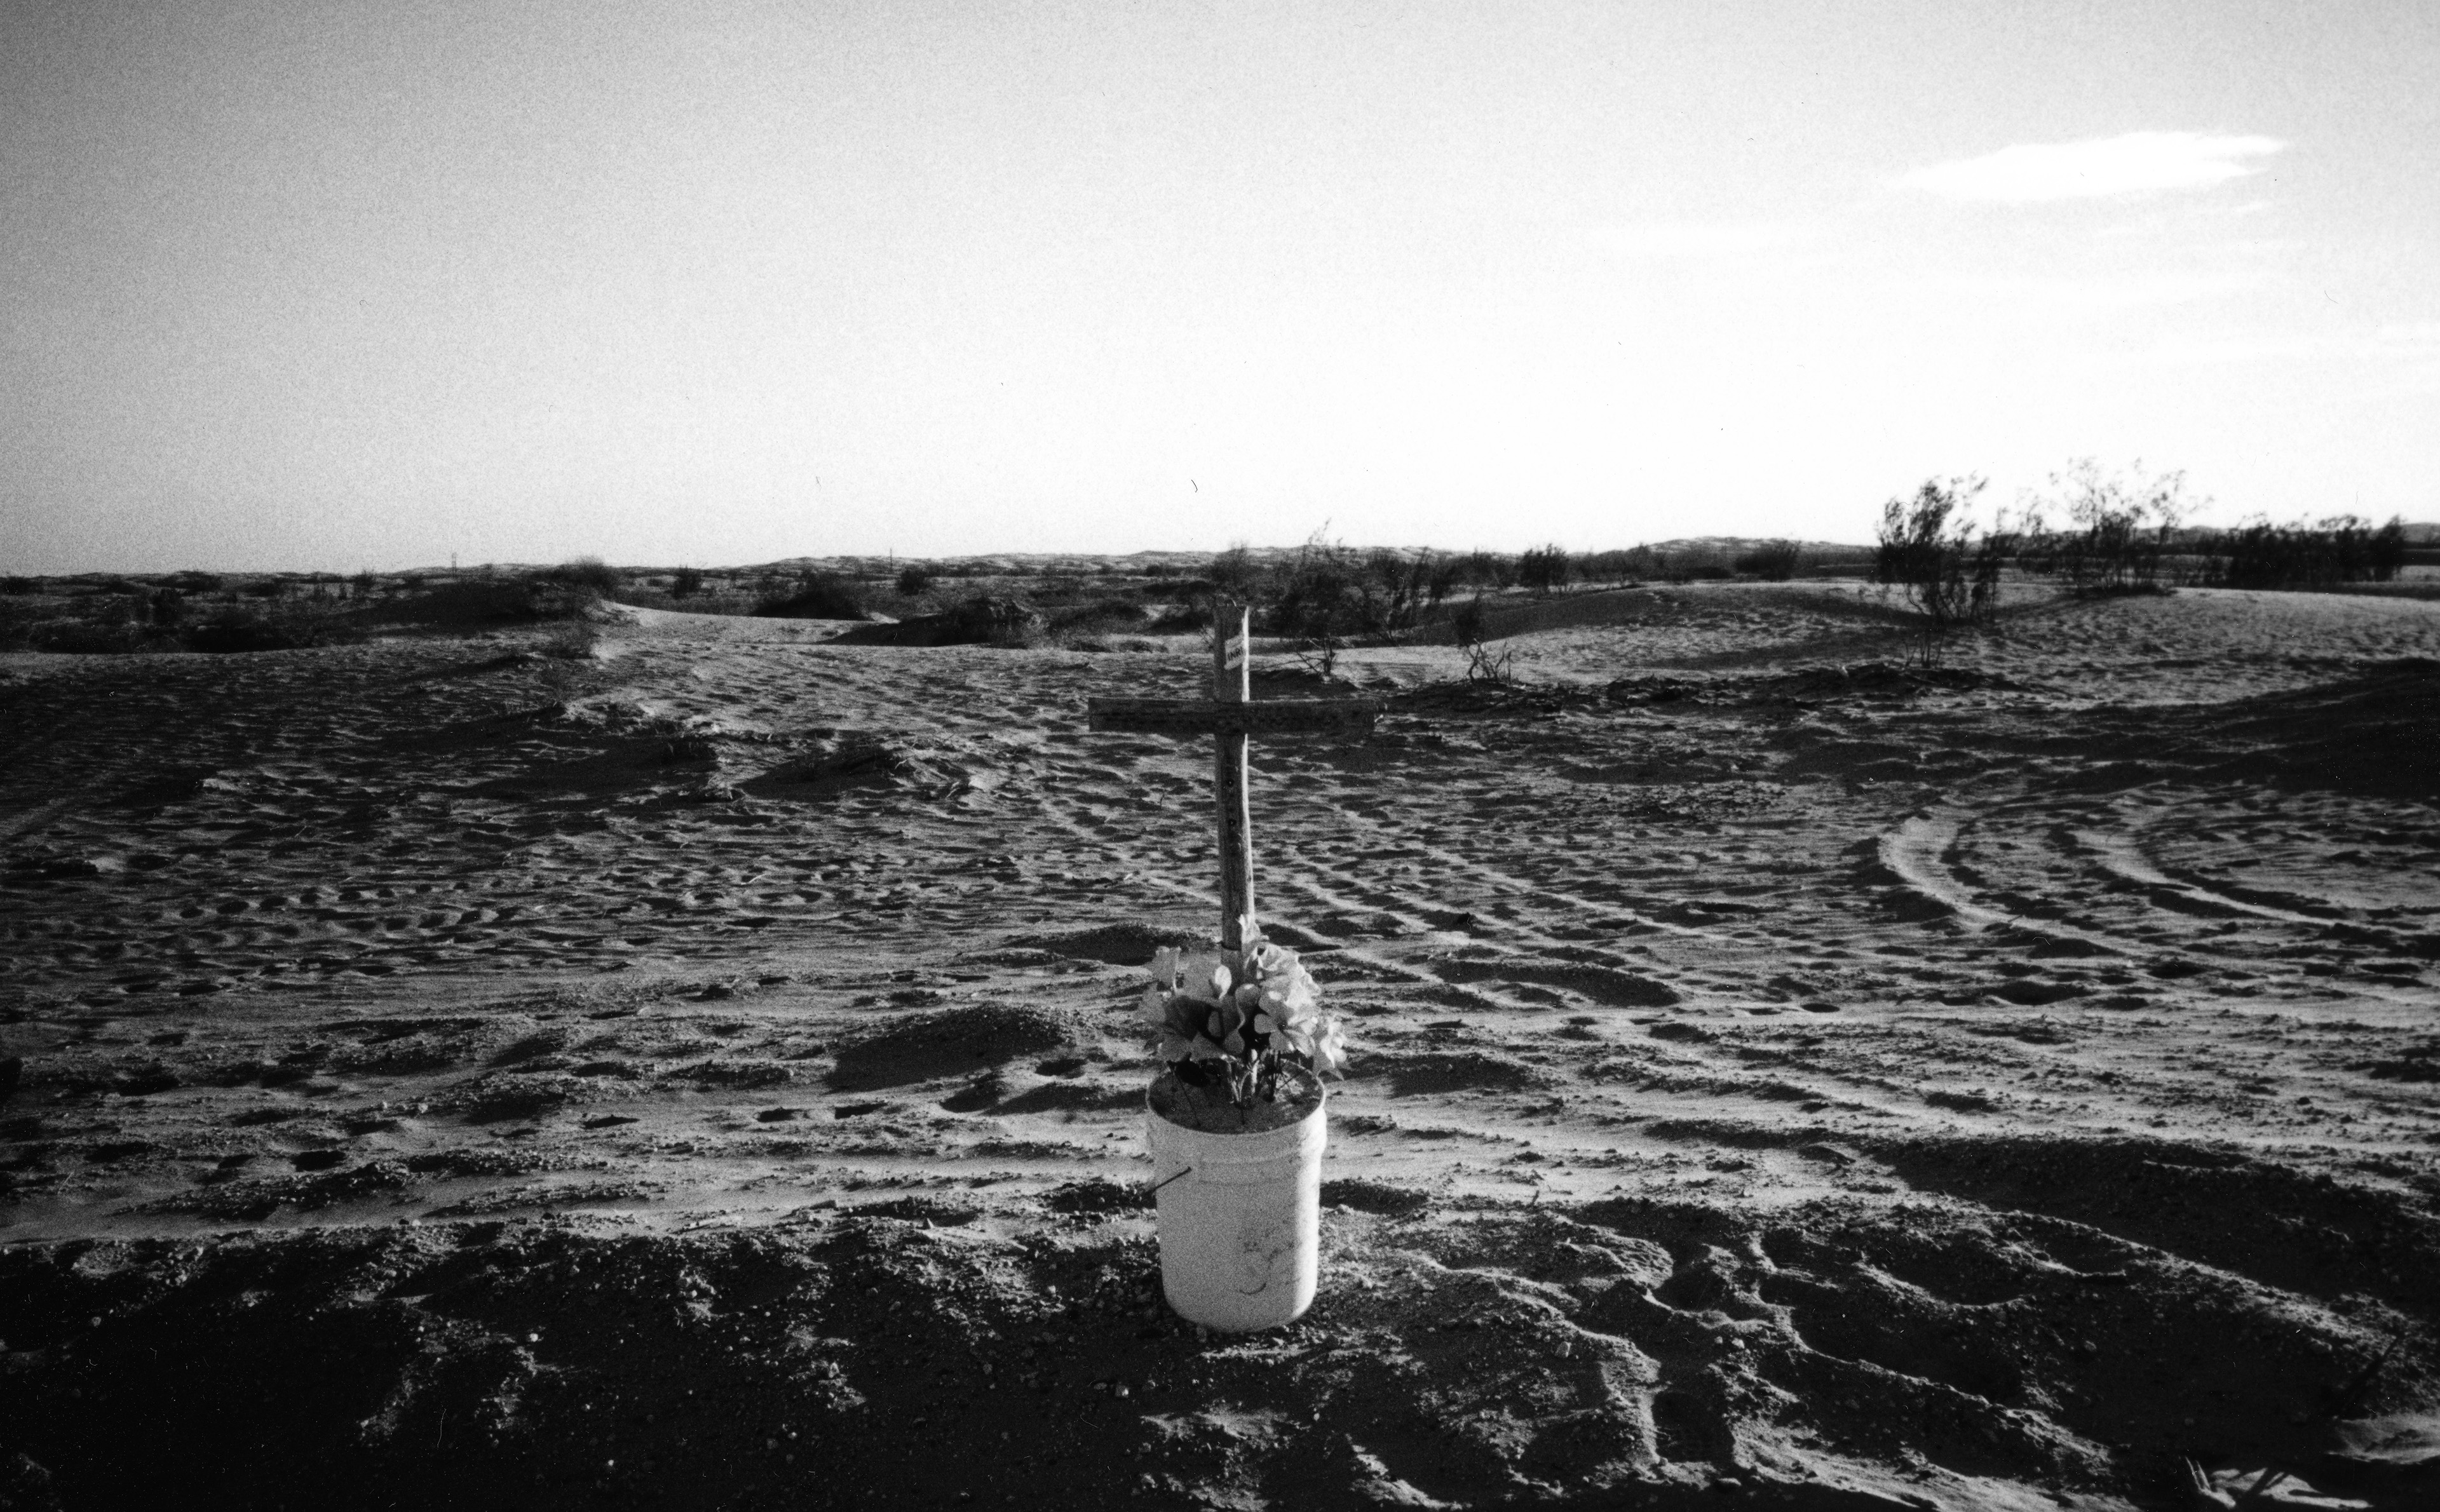 A wooden cross in a bucket with flowers in a desert landscape